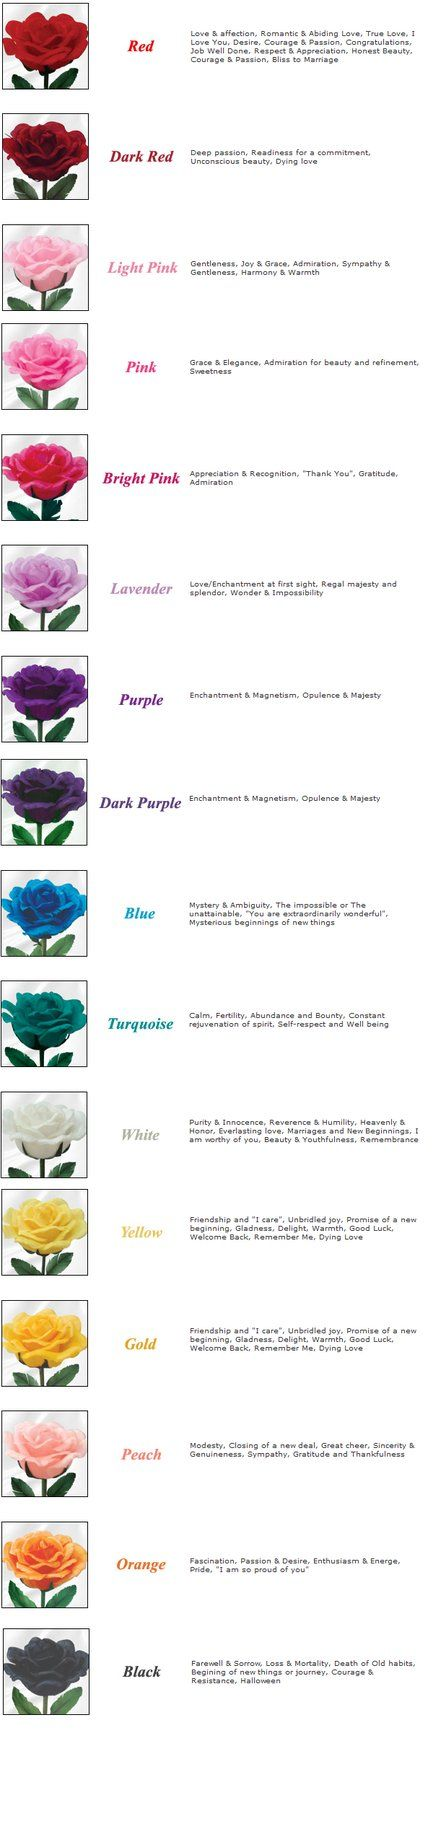 Rose Color Meanings Tattoos Pinterest Rose Color Meanings